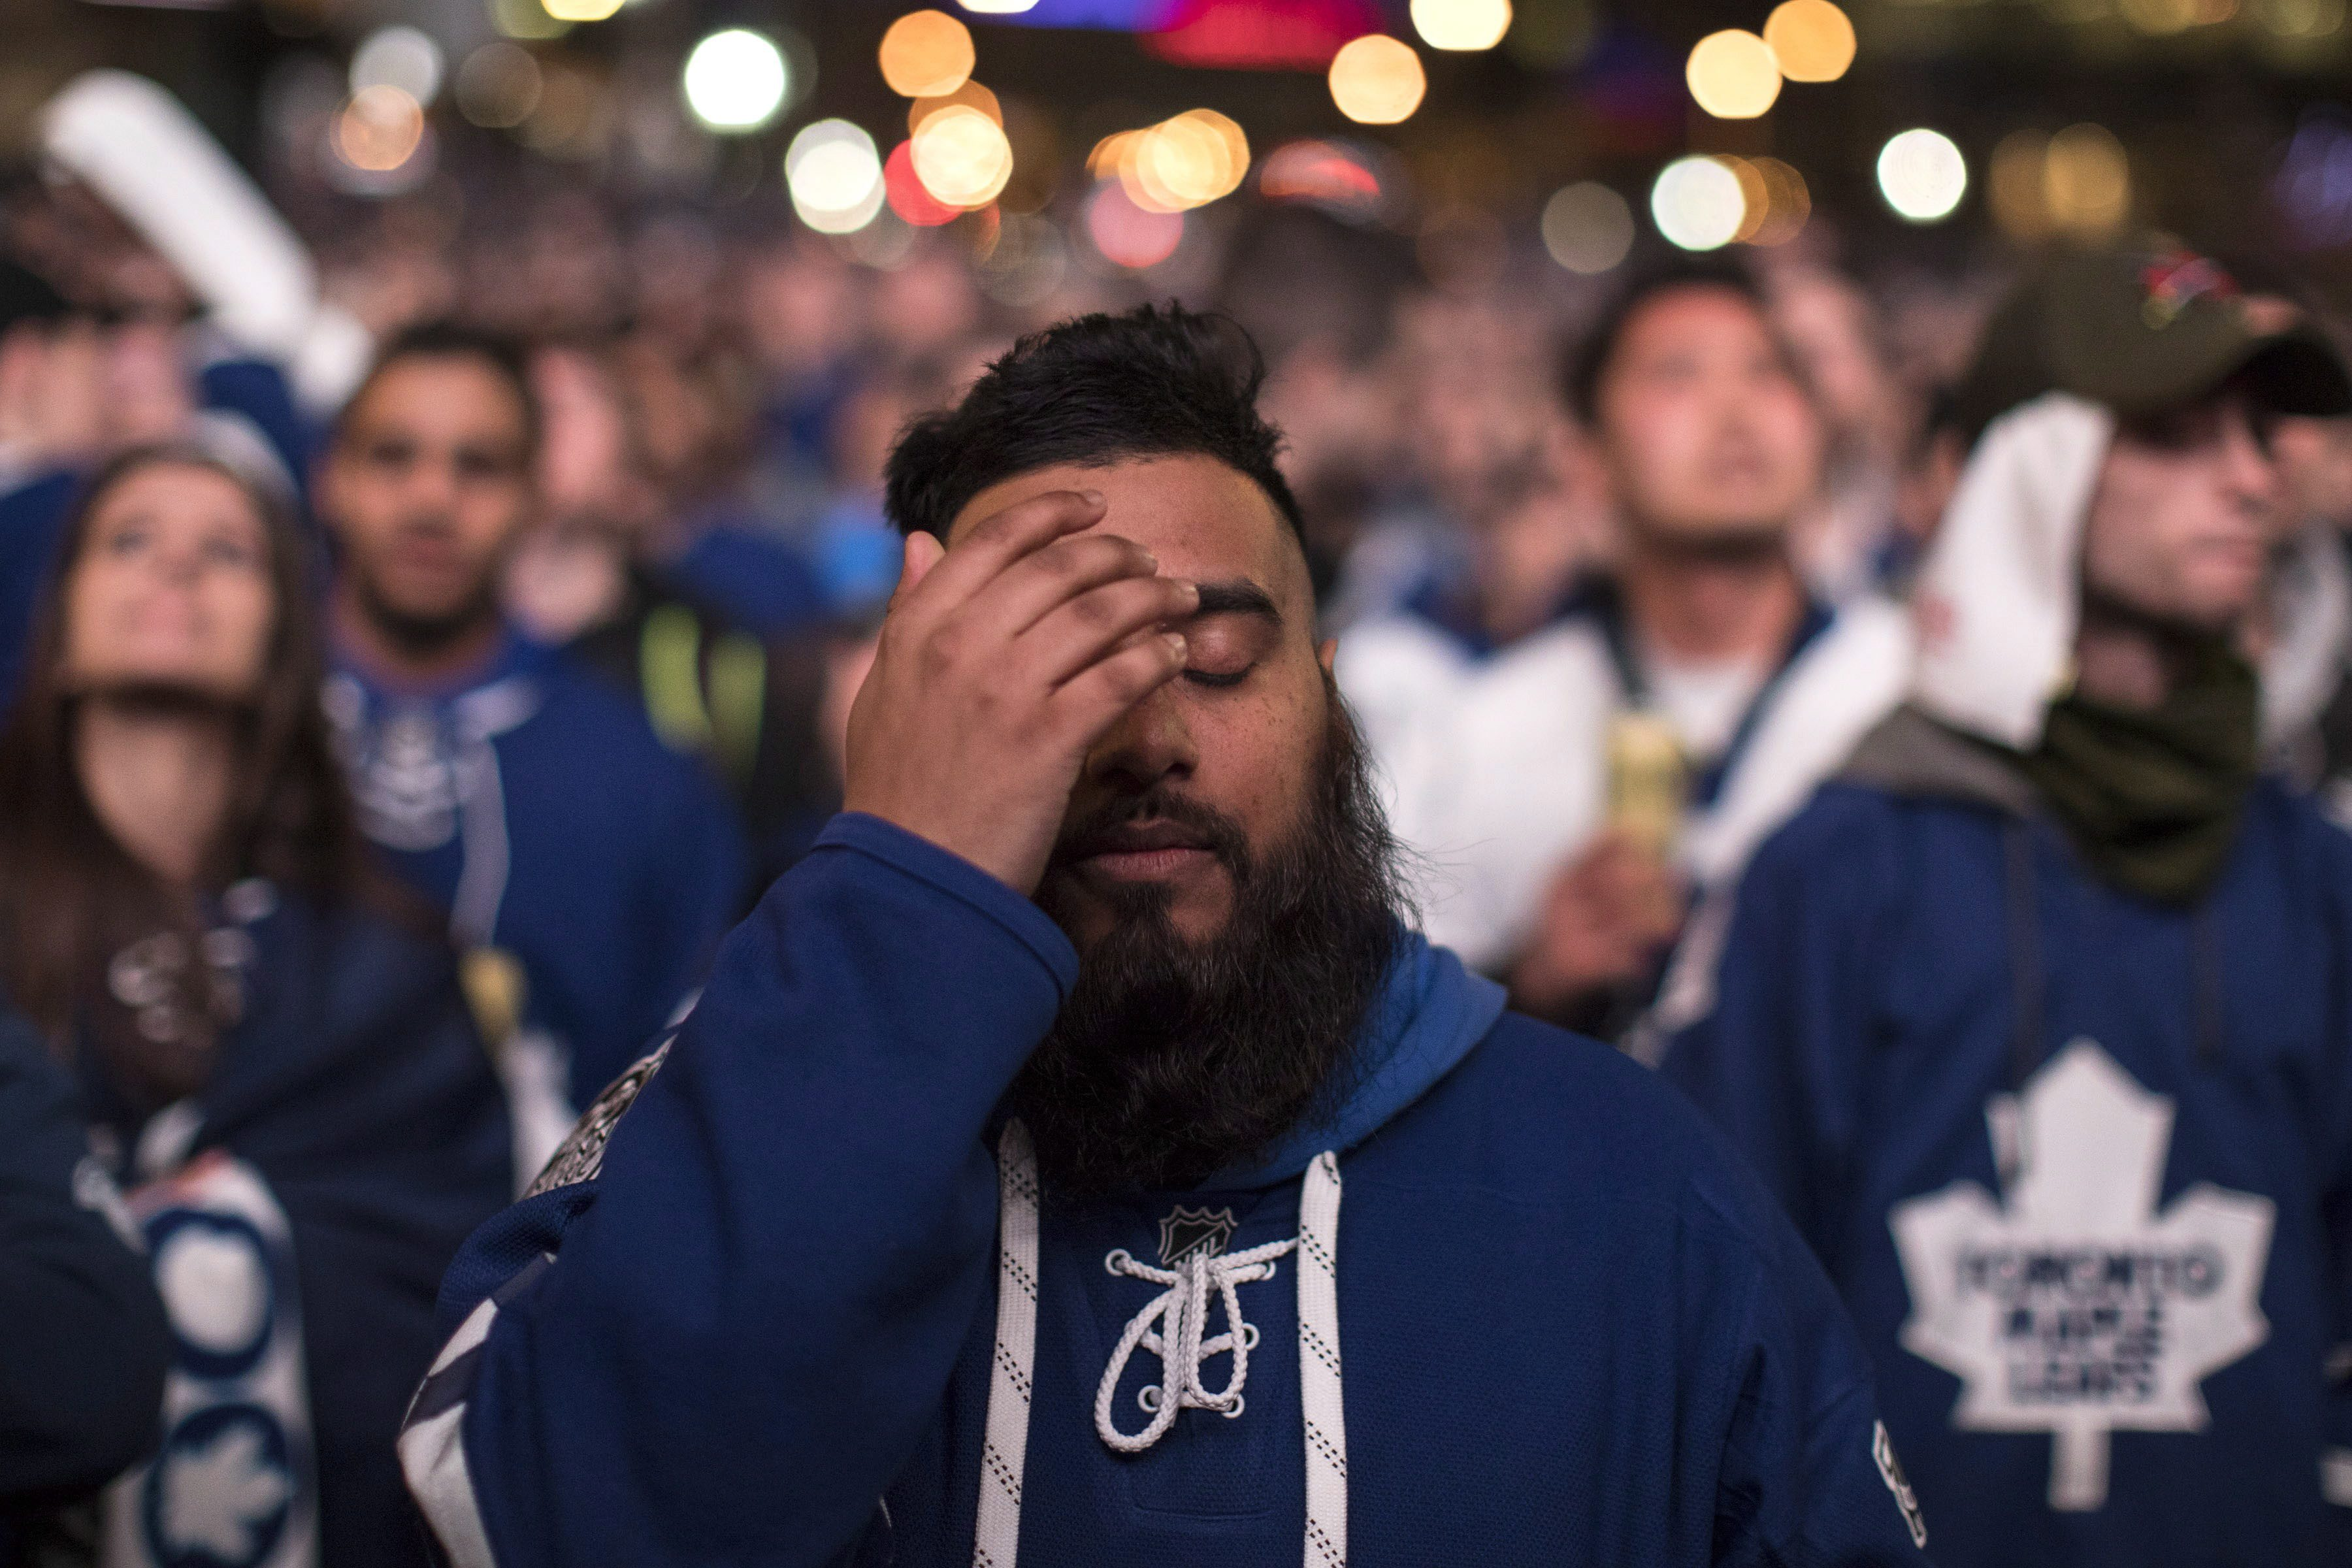 Toronto Maple Leafs Fans Watch Their Team's First Play Off Game Against The  Washington Capitals On A Giant Screen At Maple Leaf Square, In Toronto On